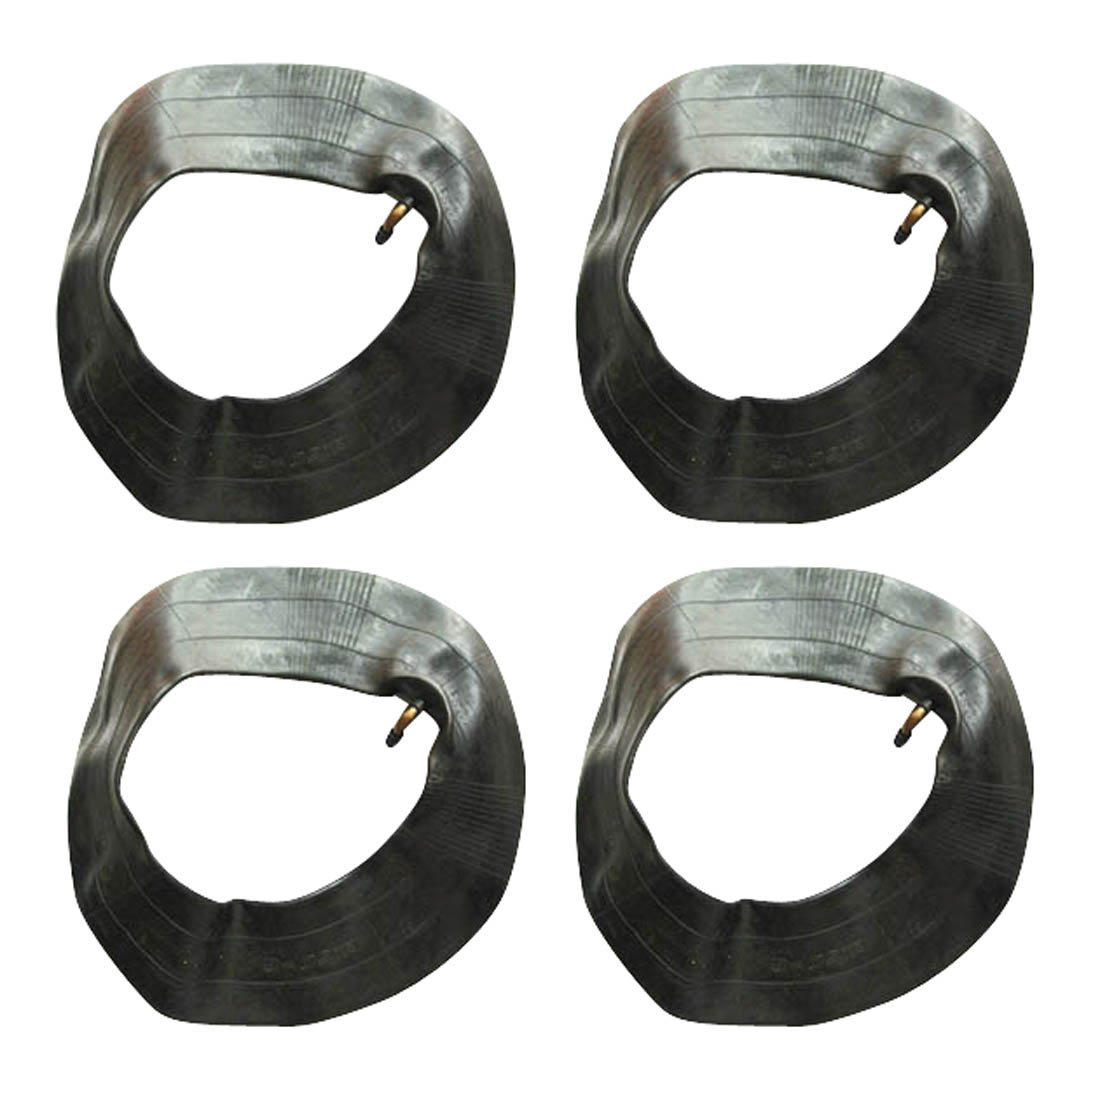 4x 3.50/8 Inner Tube For Gas & Electric Scooter Bike